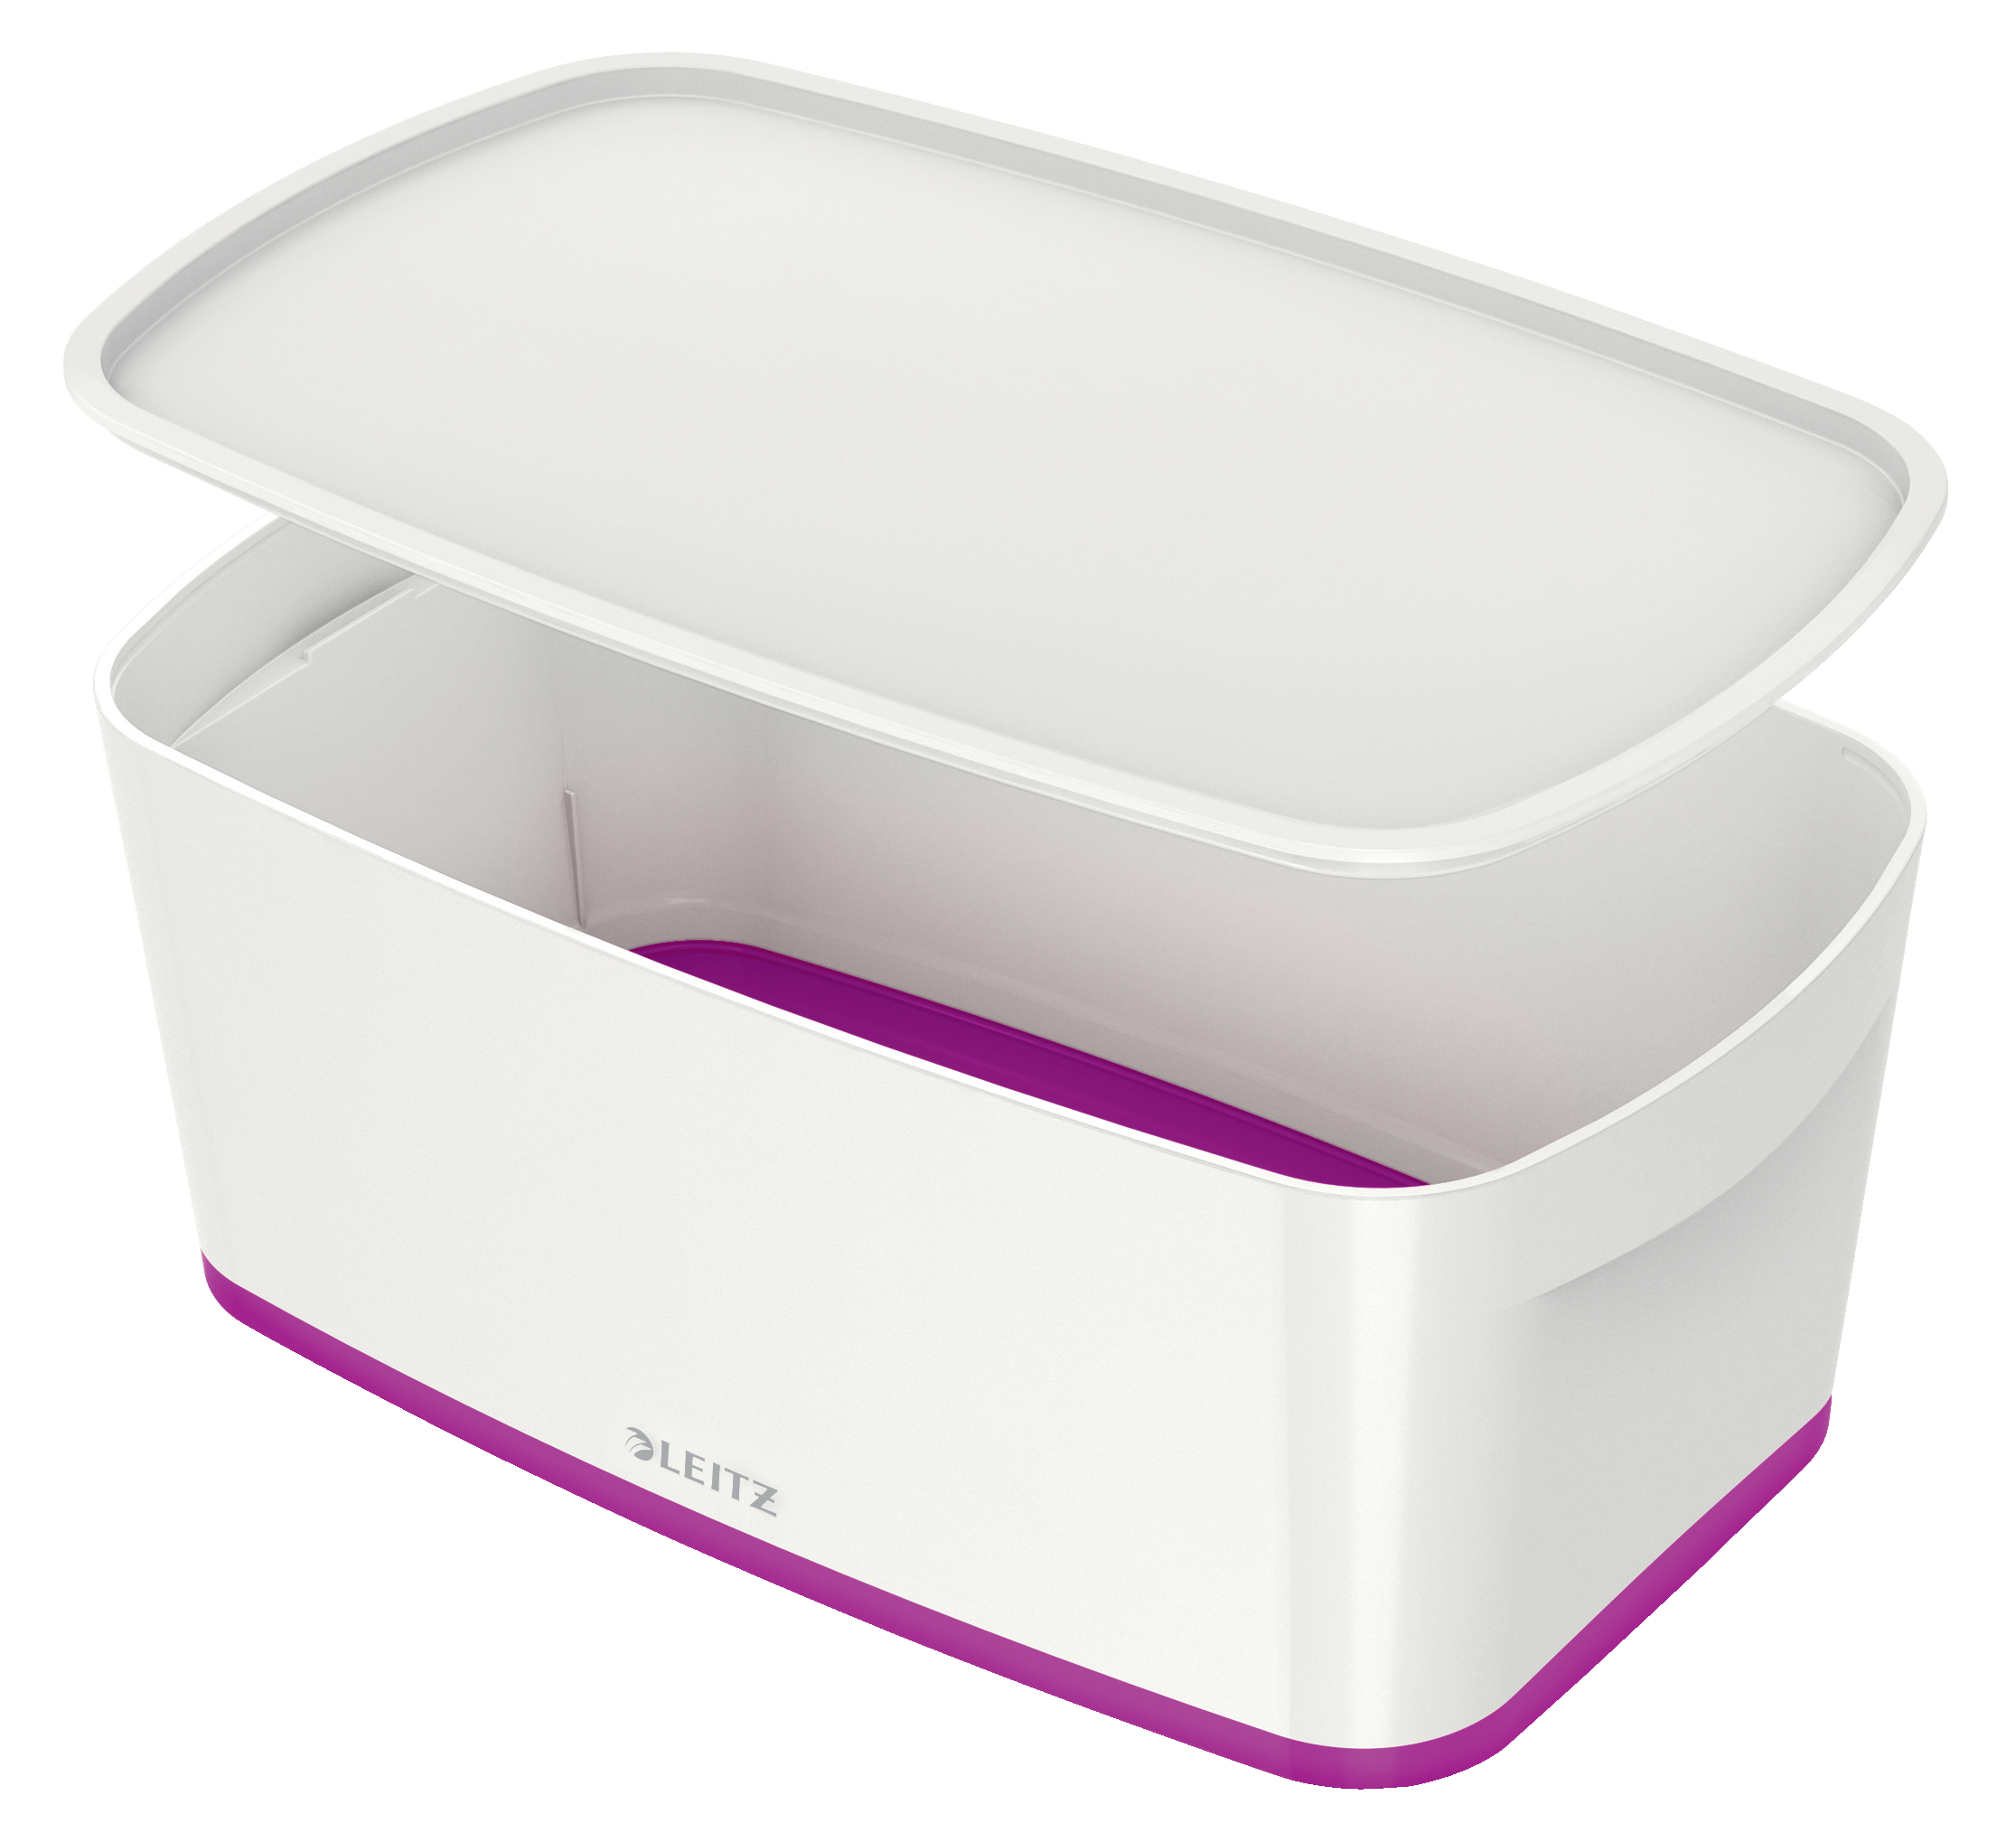 Storage Boxes Leitz MyBox Small with Lid WOW White Purple